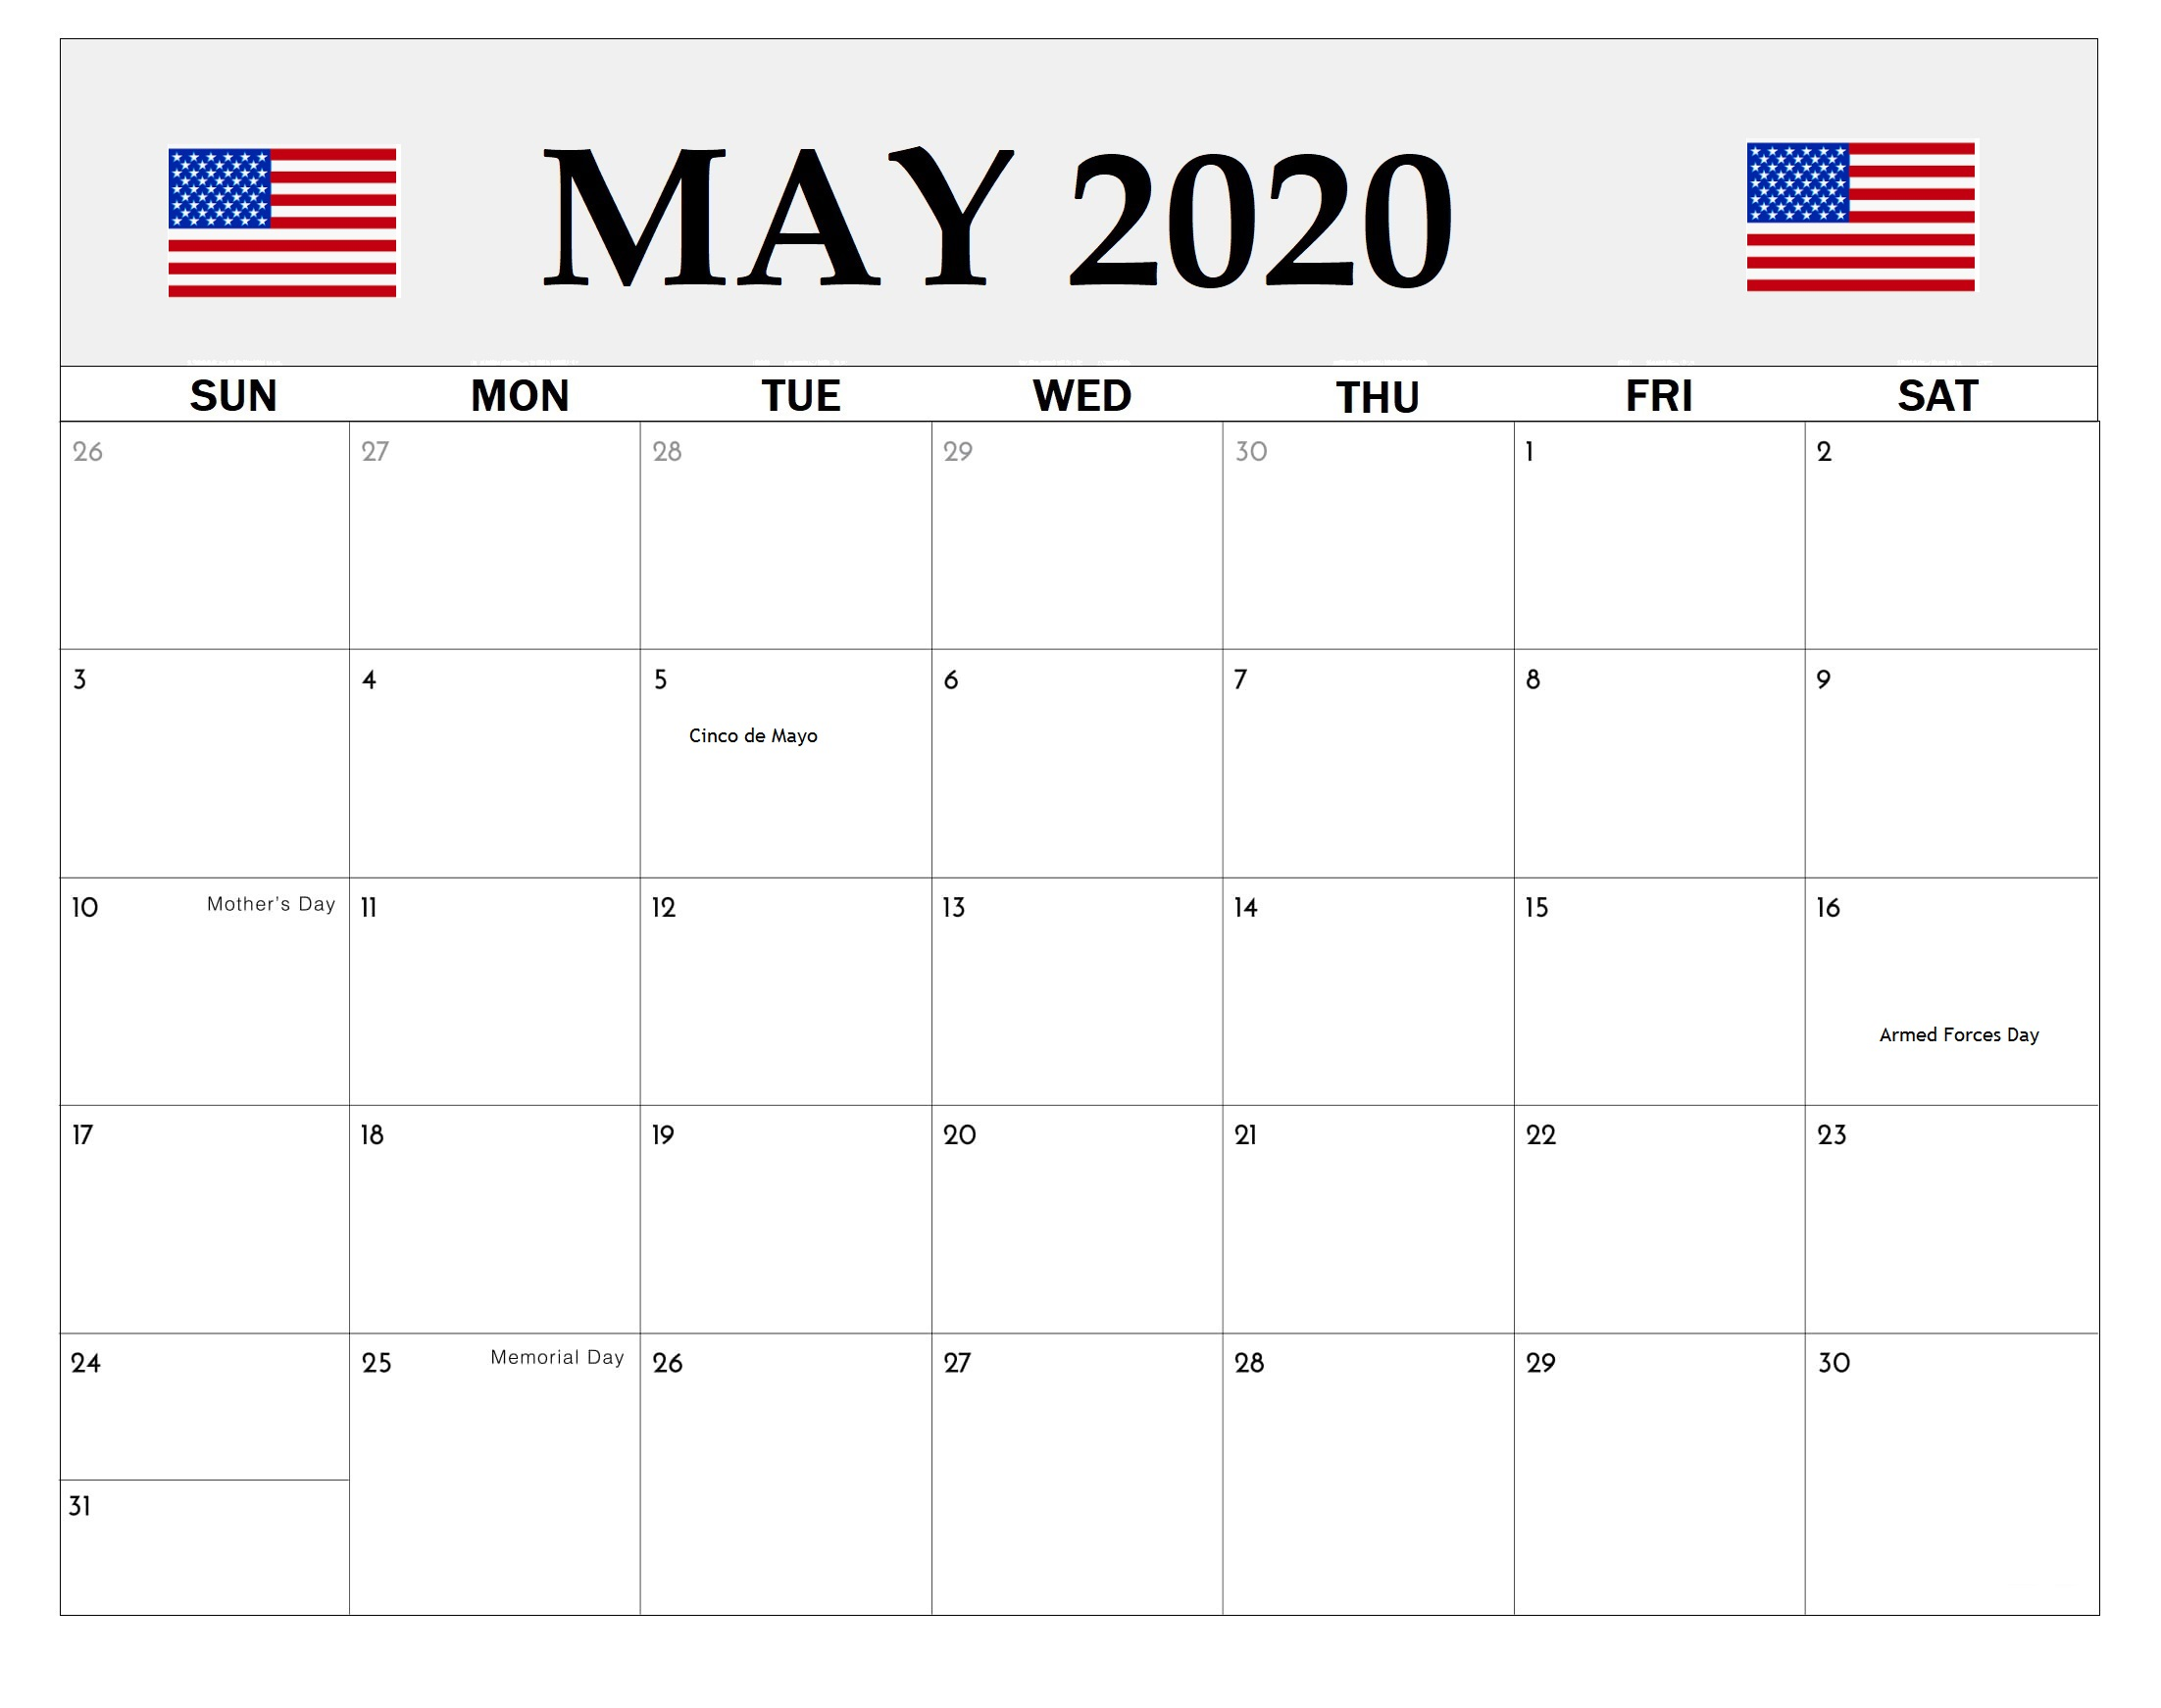 May 2020 United States Holidays Calendar